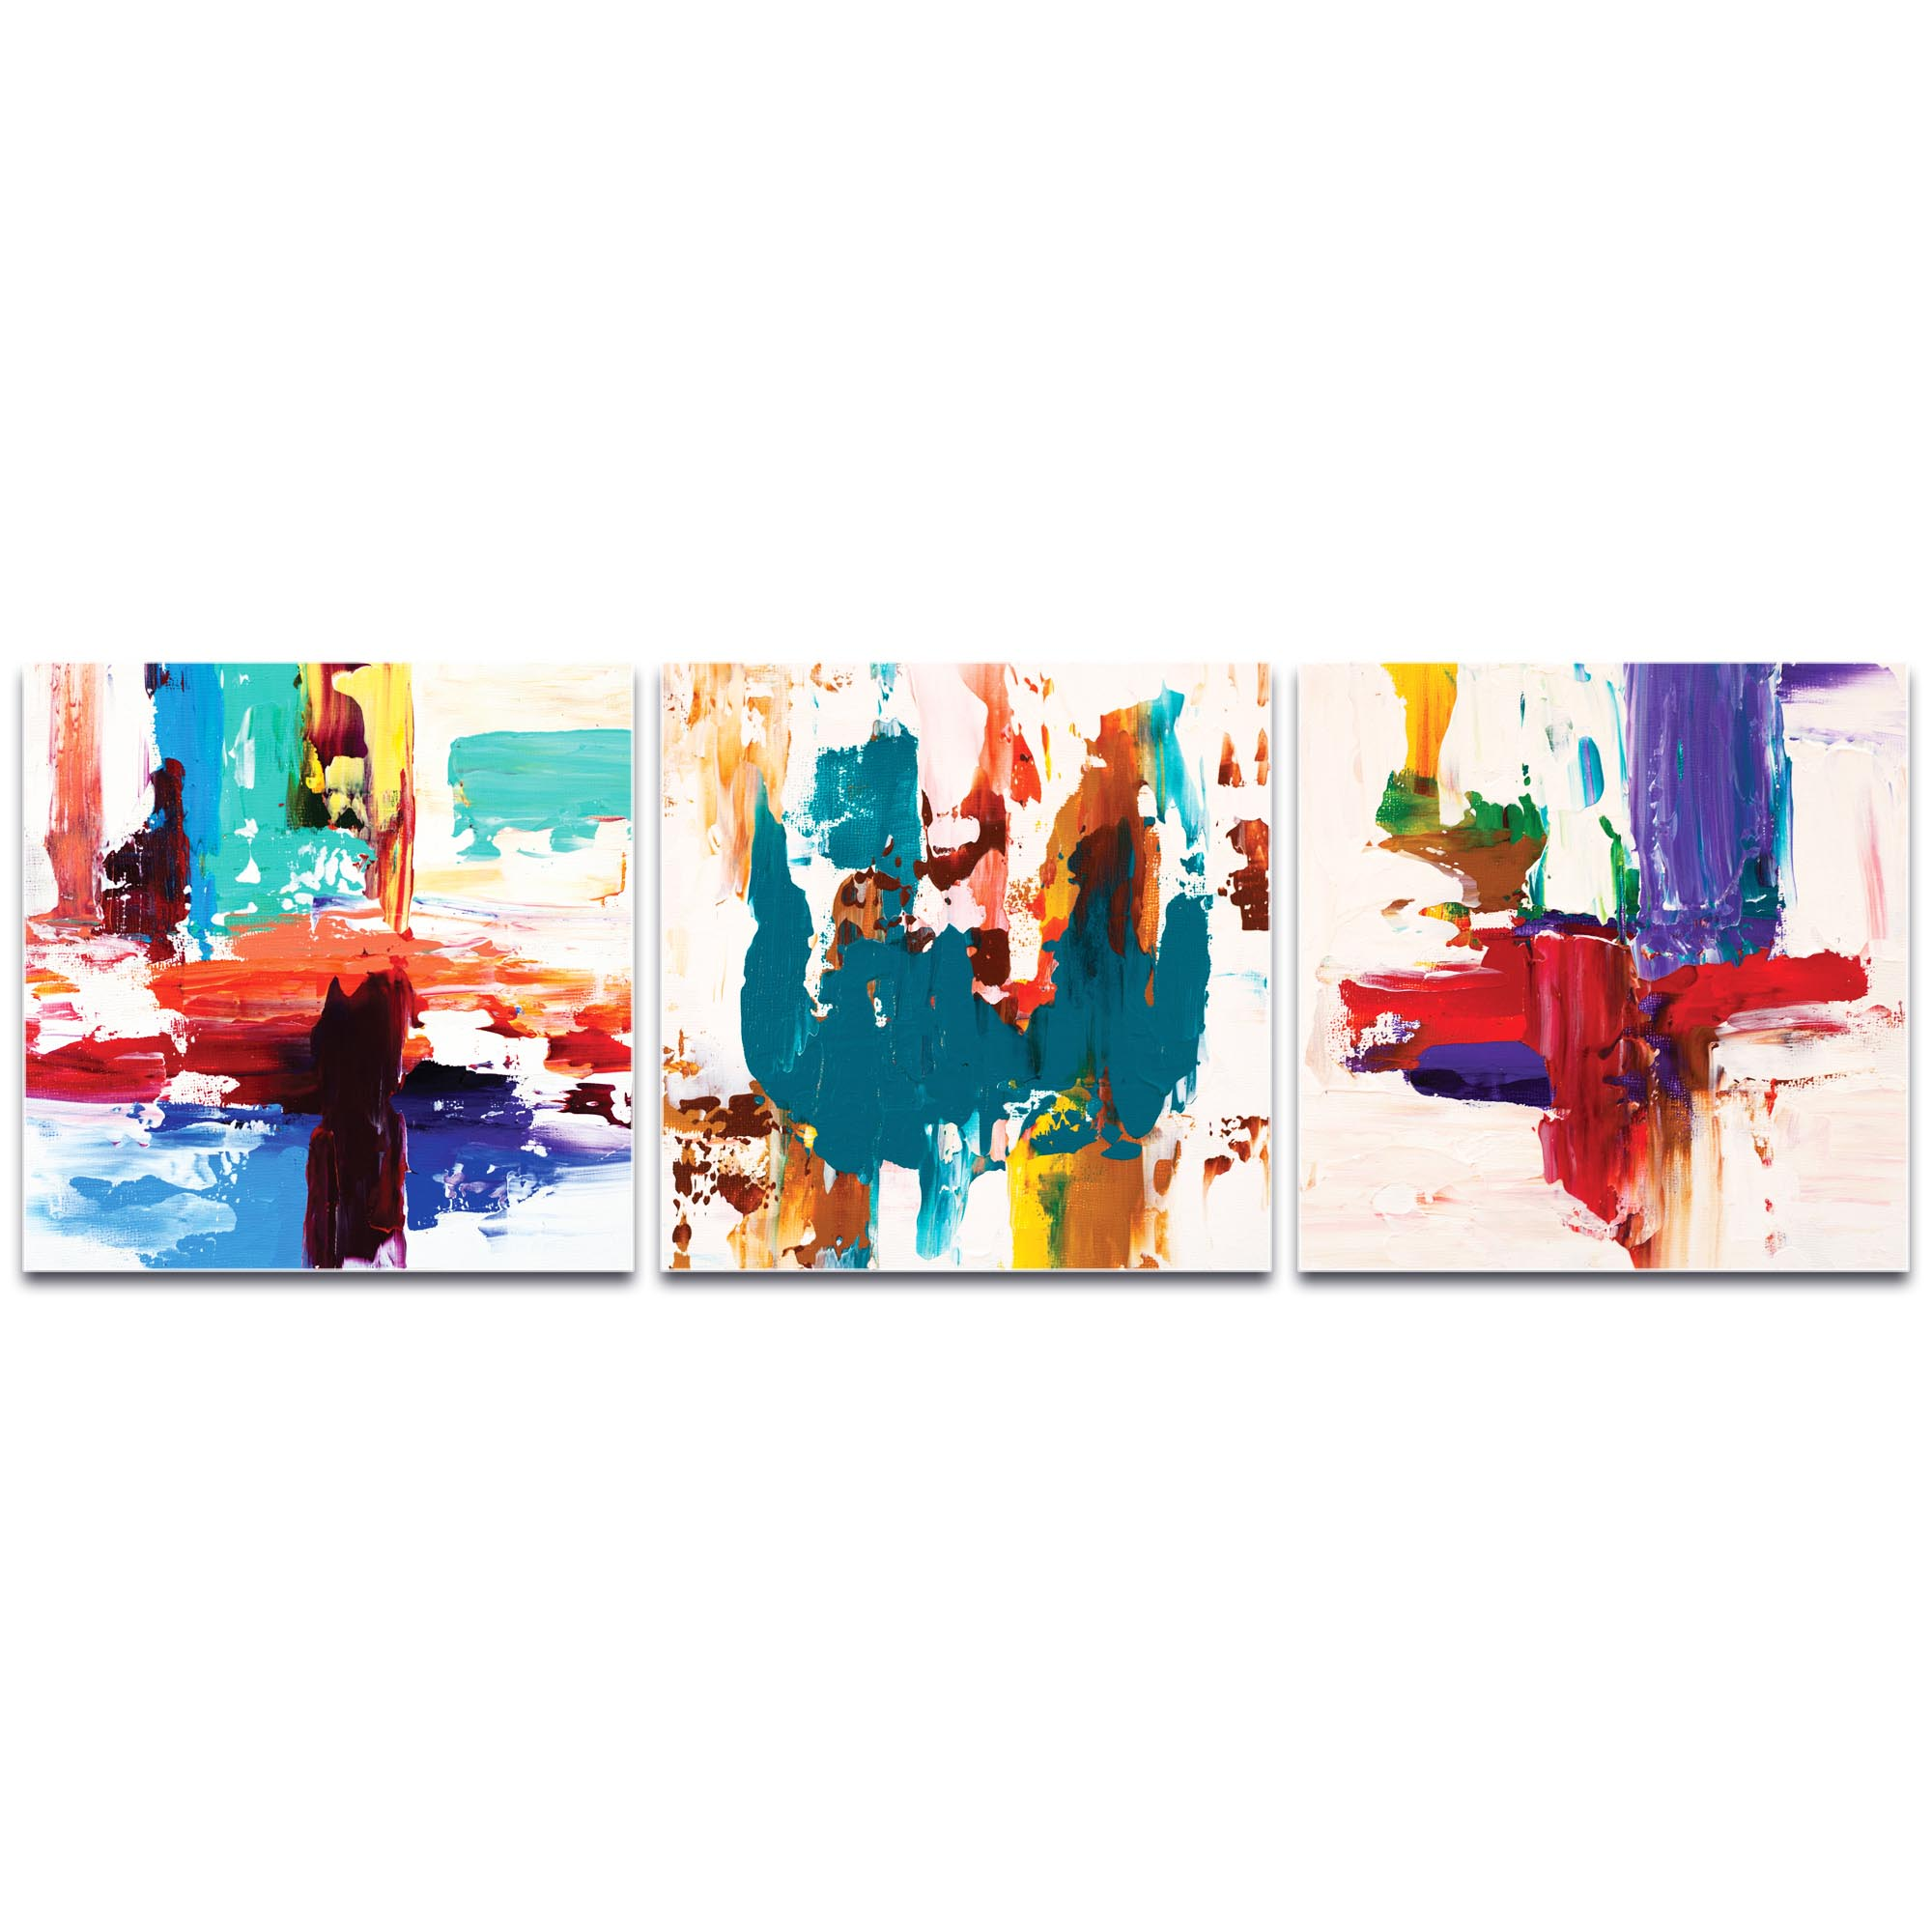 Abstract Wall Art 'Urban Triptych 2 Large' - Urban Decor on Metal or Plexiglass - Image 2